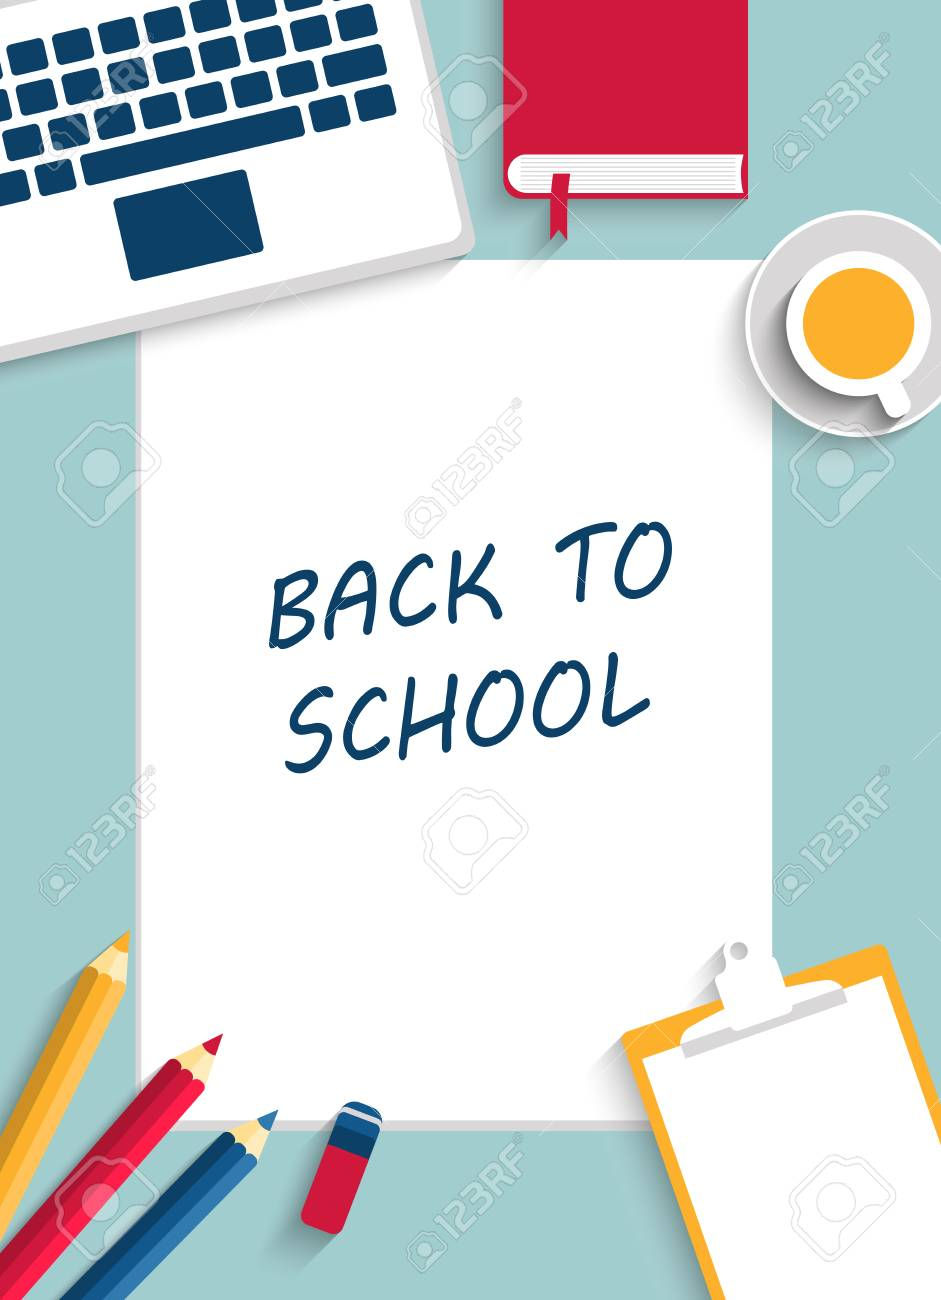 back to school background vertical vector illustration template for creative design layout poster